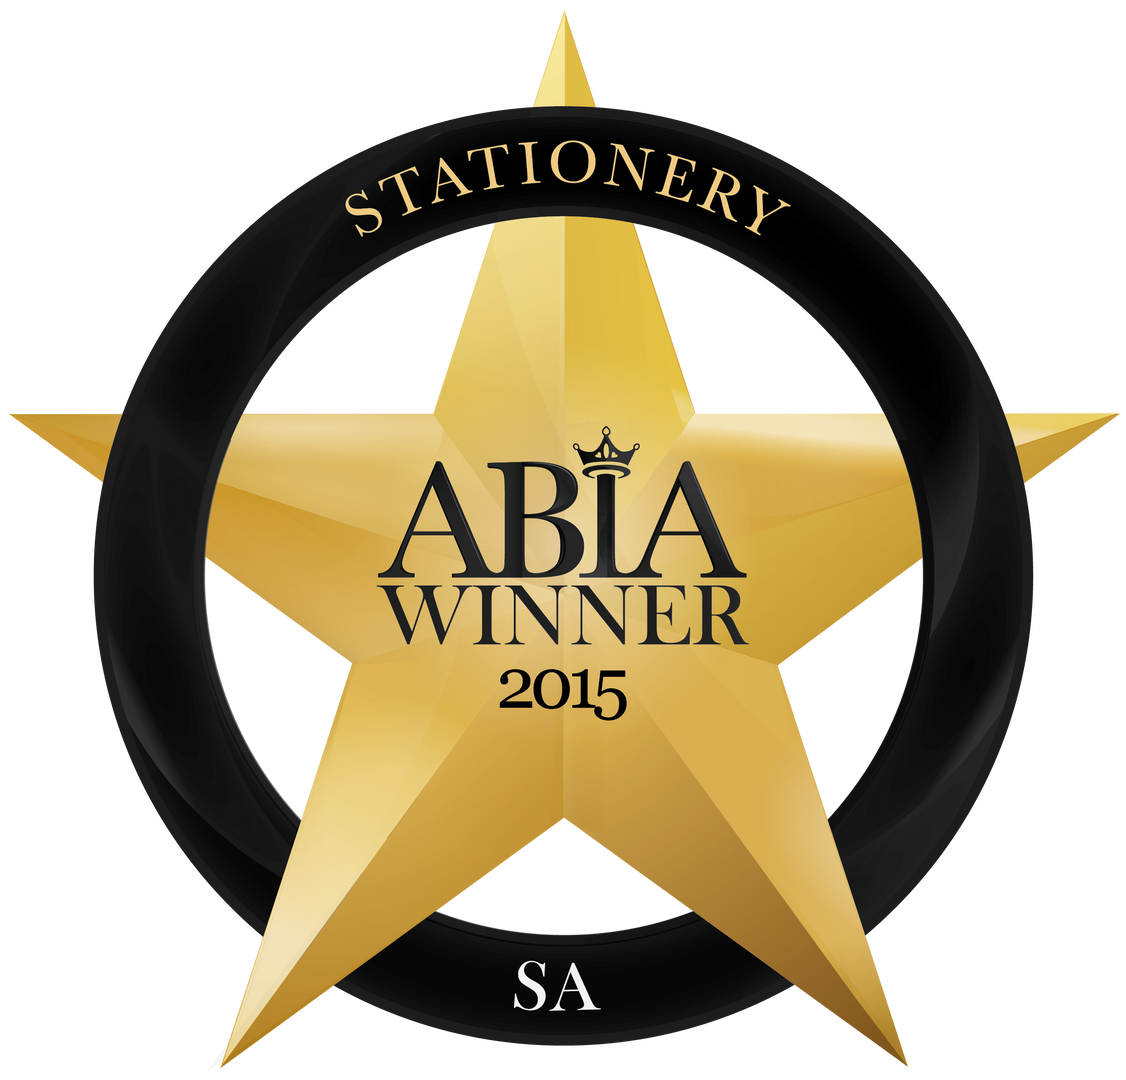 abia-stationery-sa-2015_WINNER.png